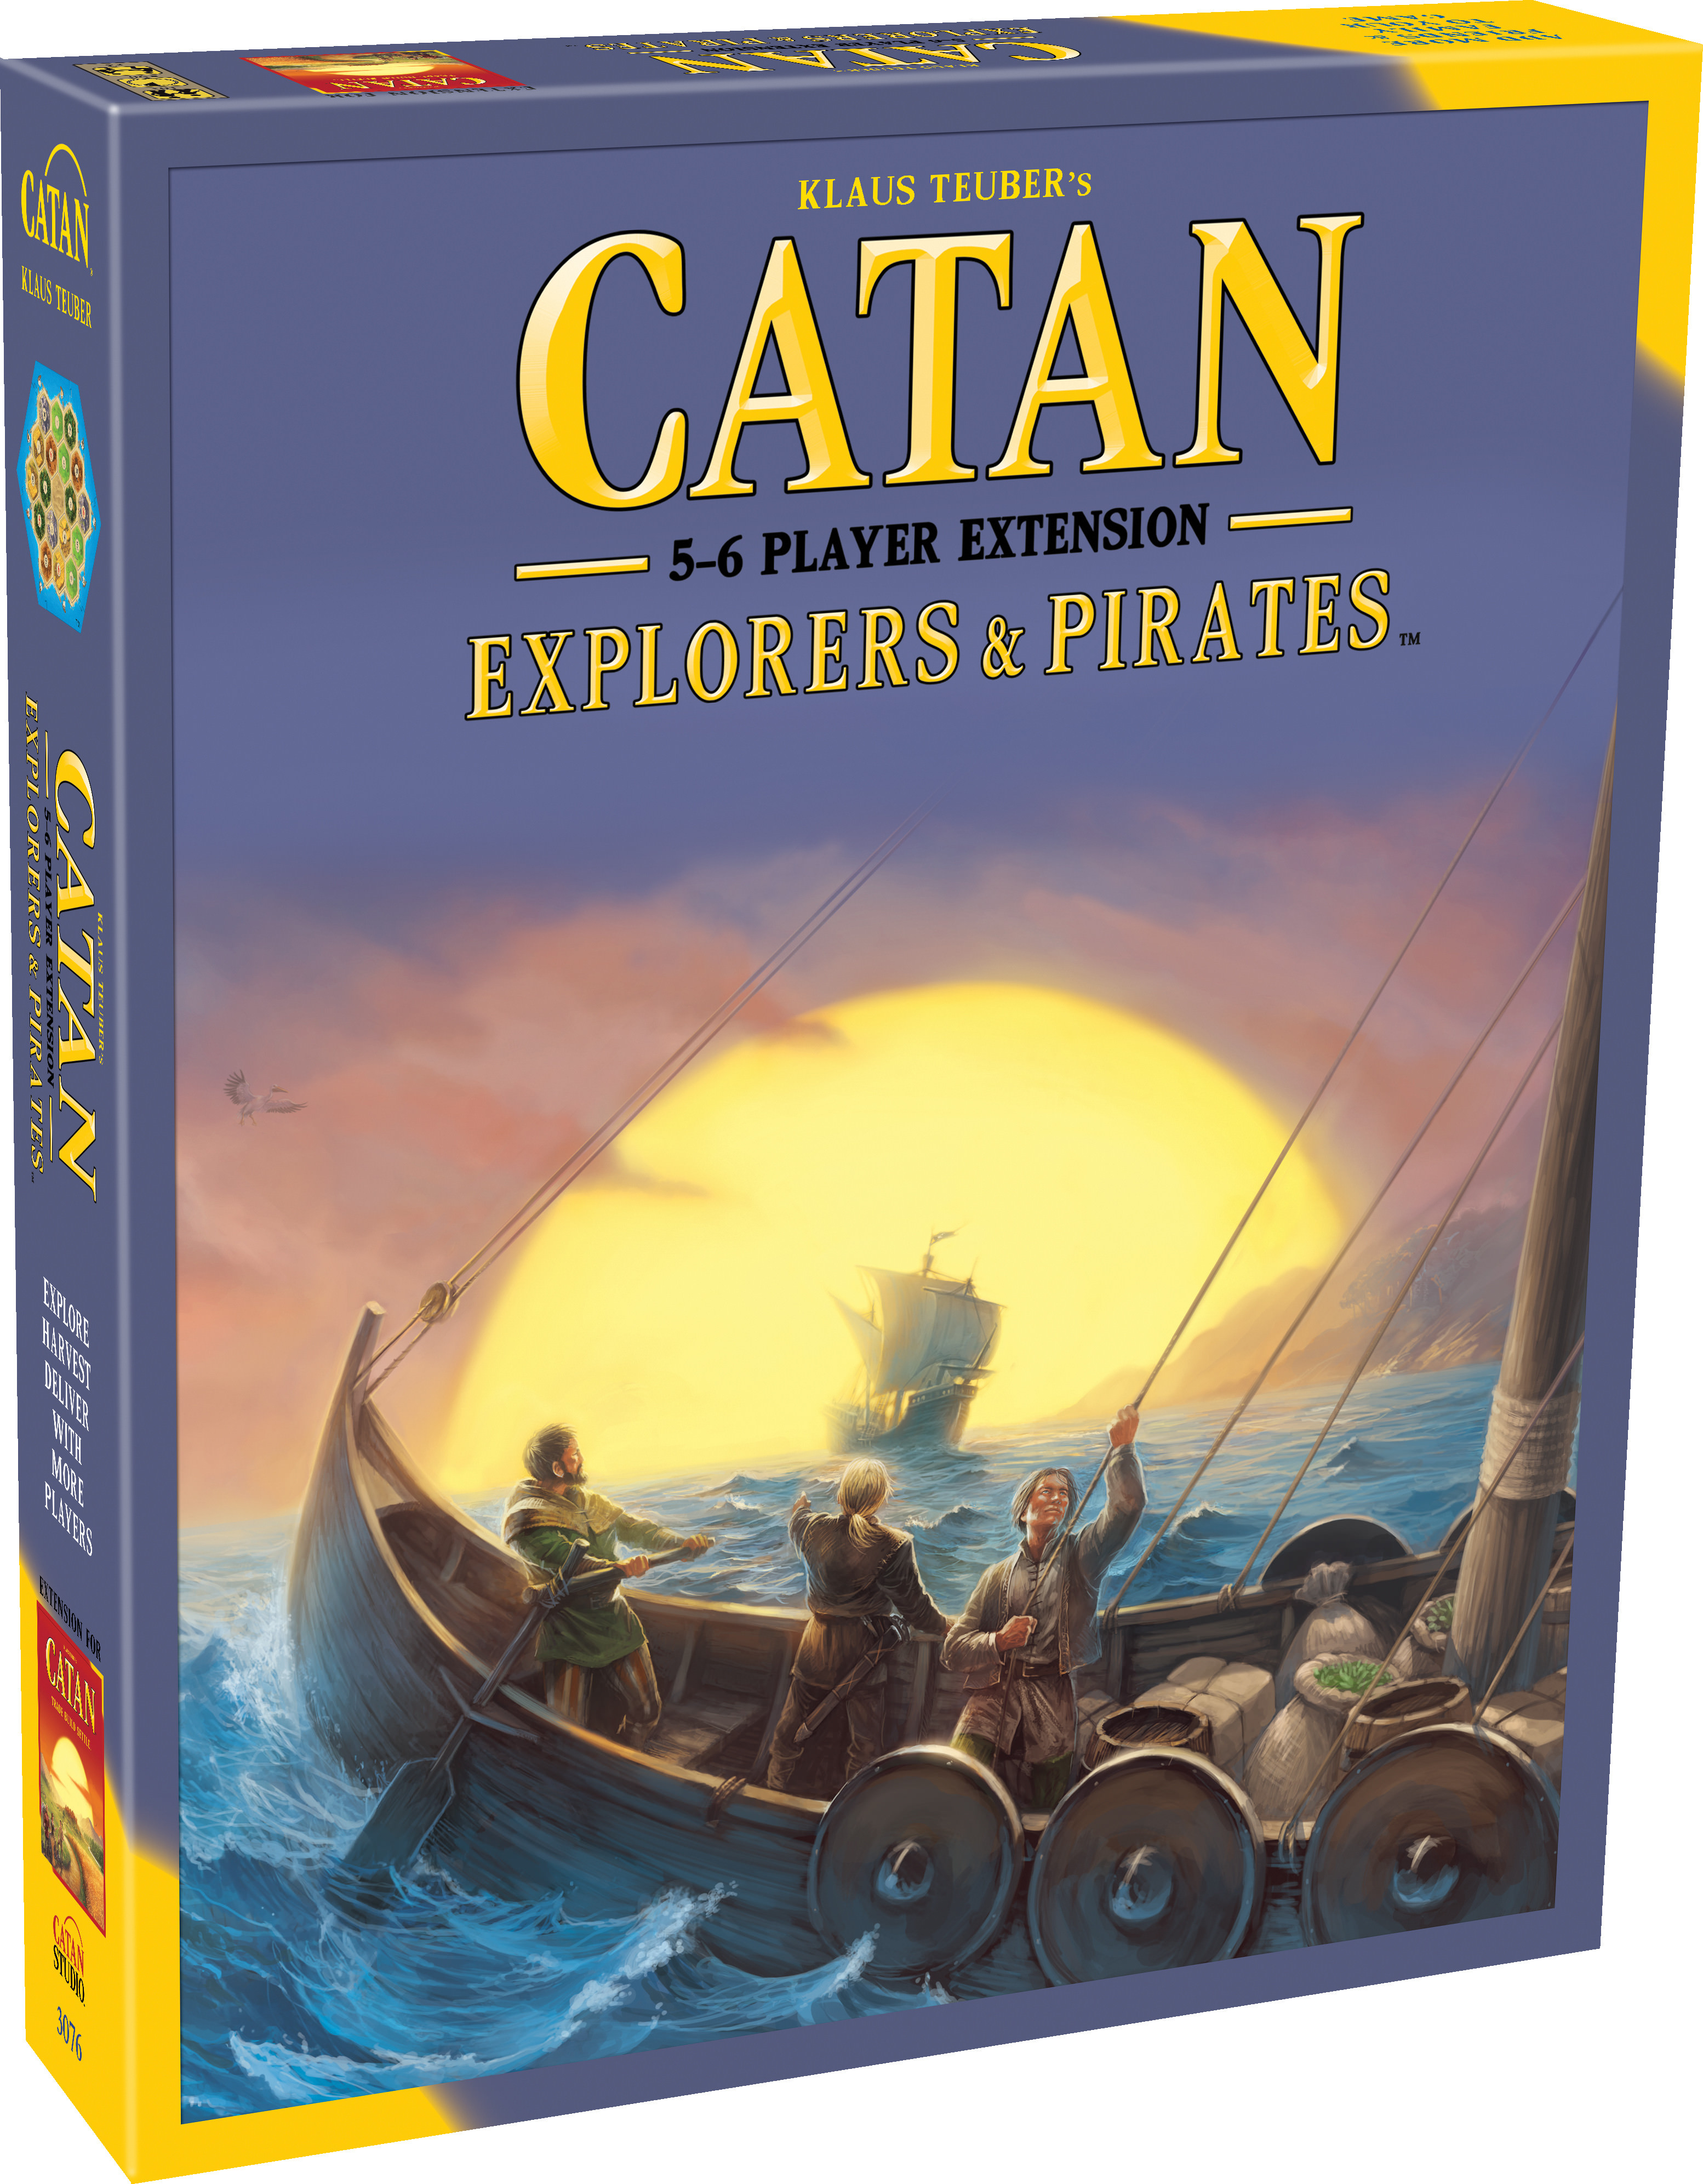 Catan: Explorers & Pirates 5-6 Player Extension by Asmodee North America